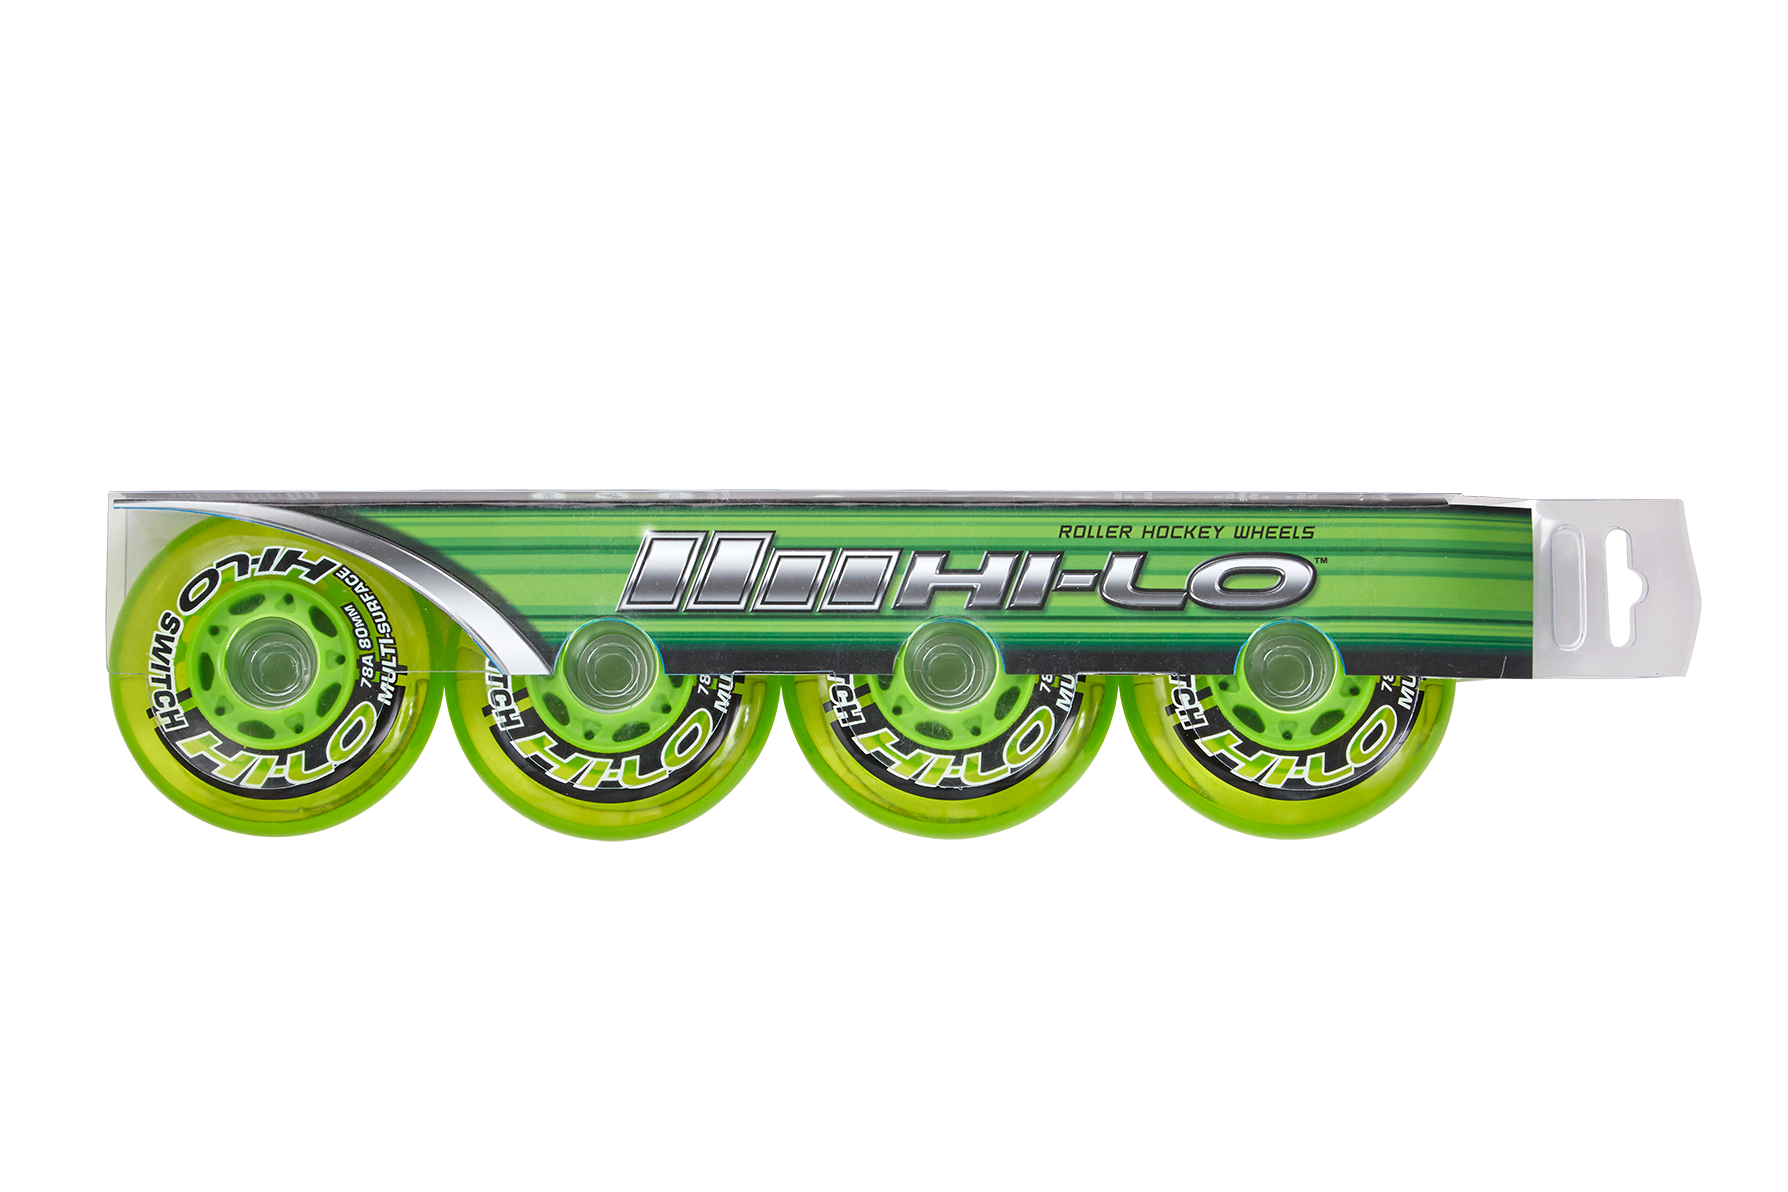 HI-LO SWITCH ROLLER HOCKEY WHEELS 4PK S19 (INDOOR / OUTDOOR),,moyen